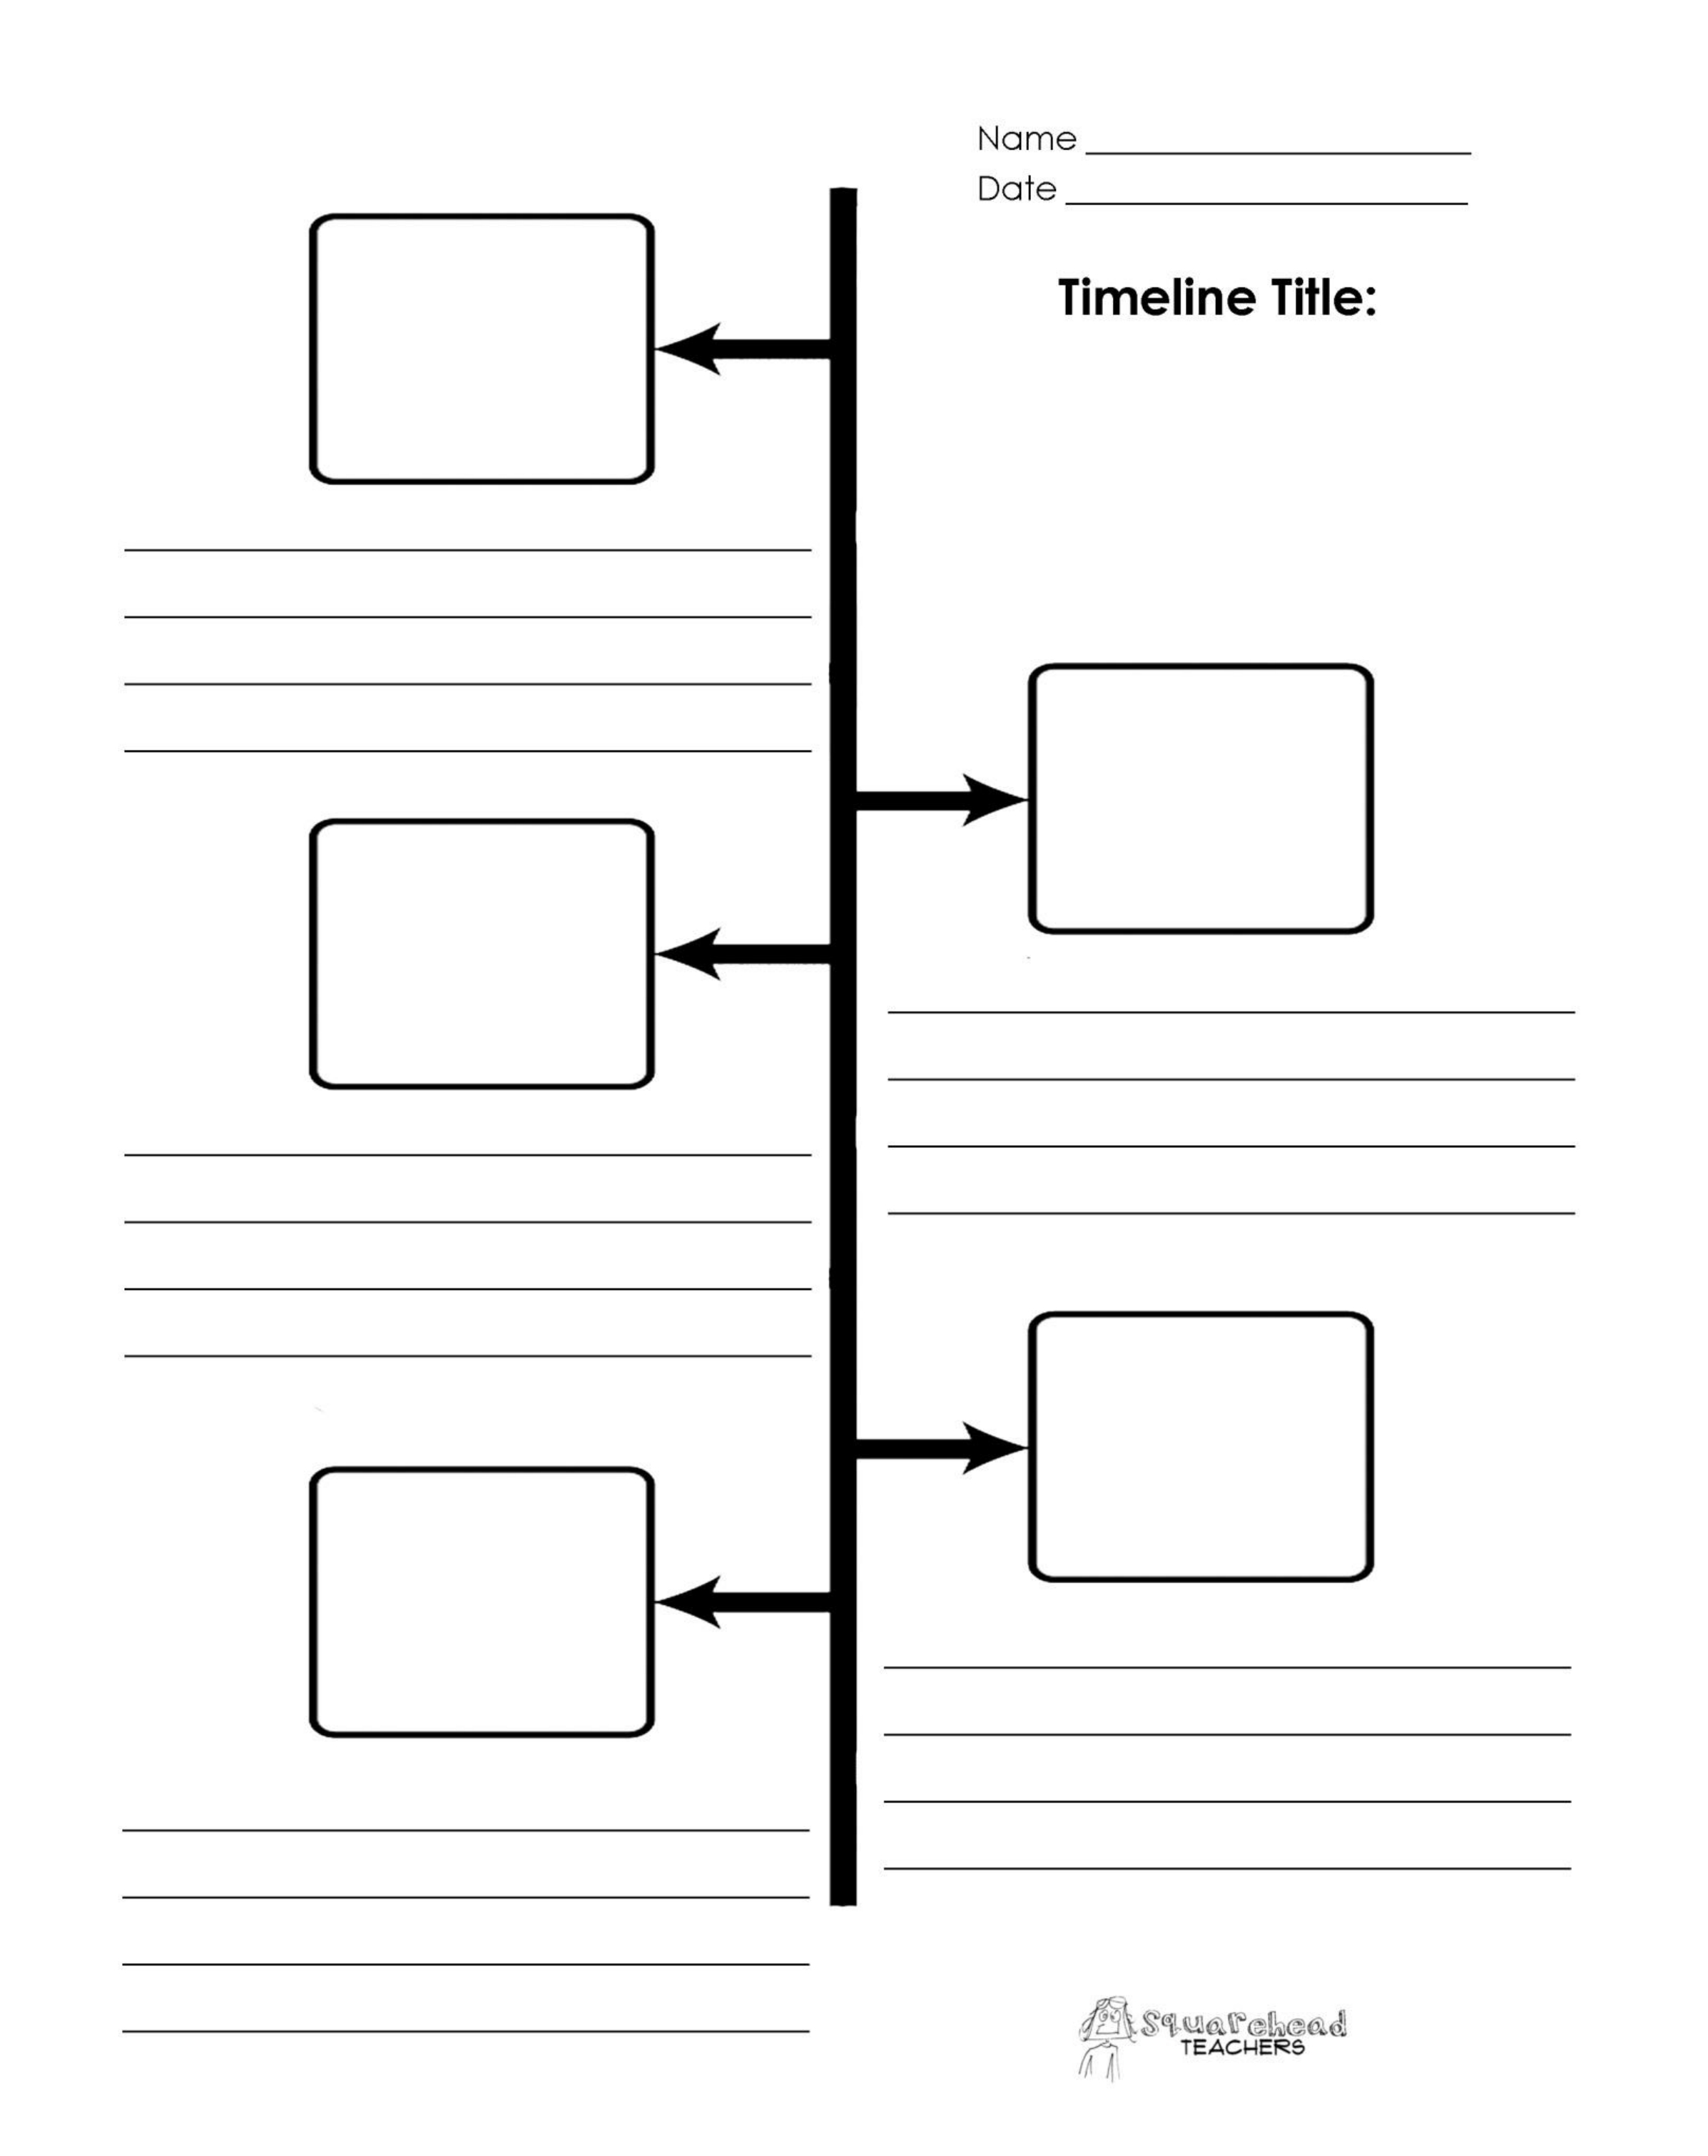 Blank Project Timeline Template Free Download - Free Blank Timeline Template Printable